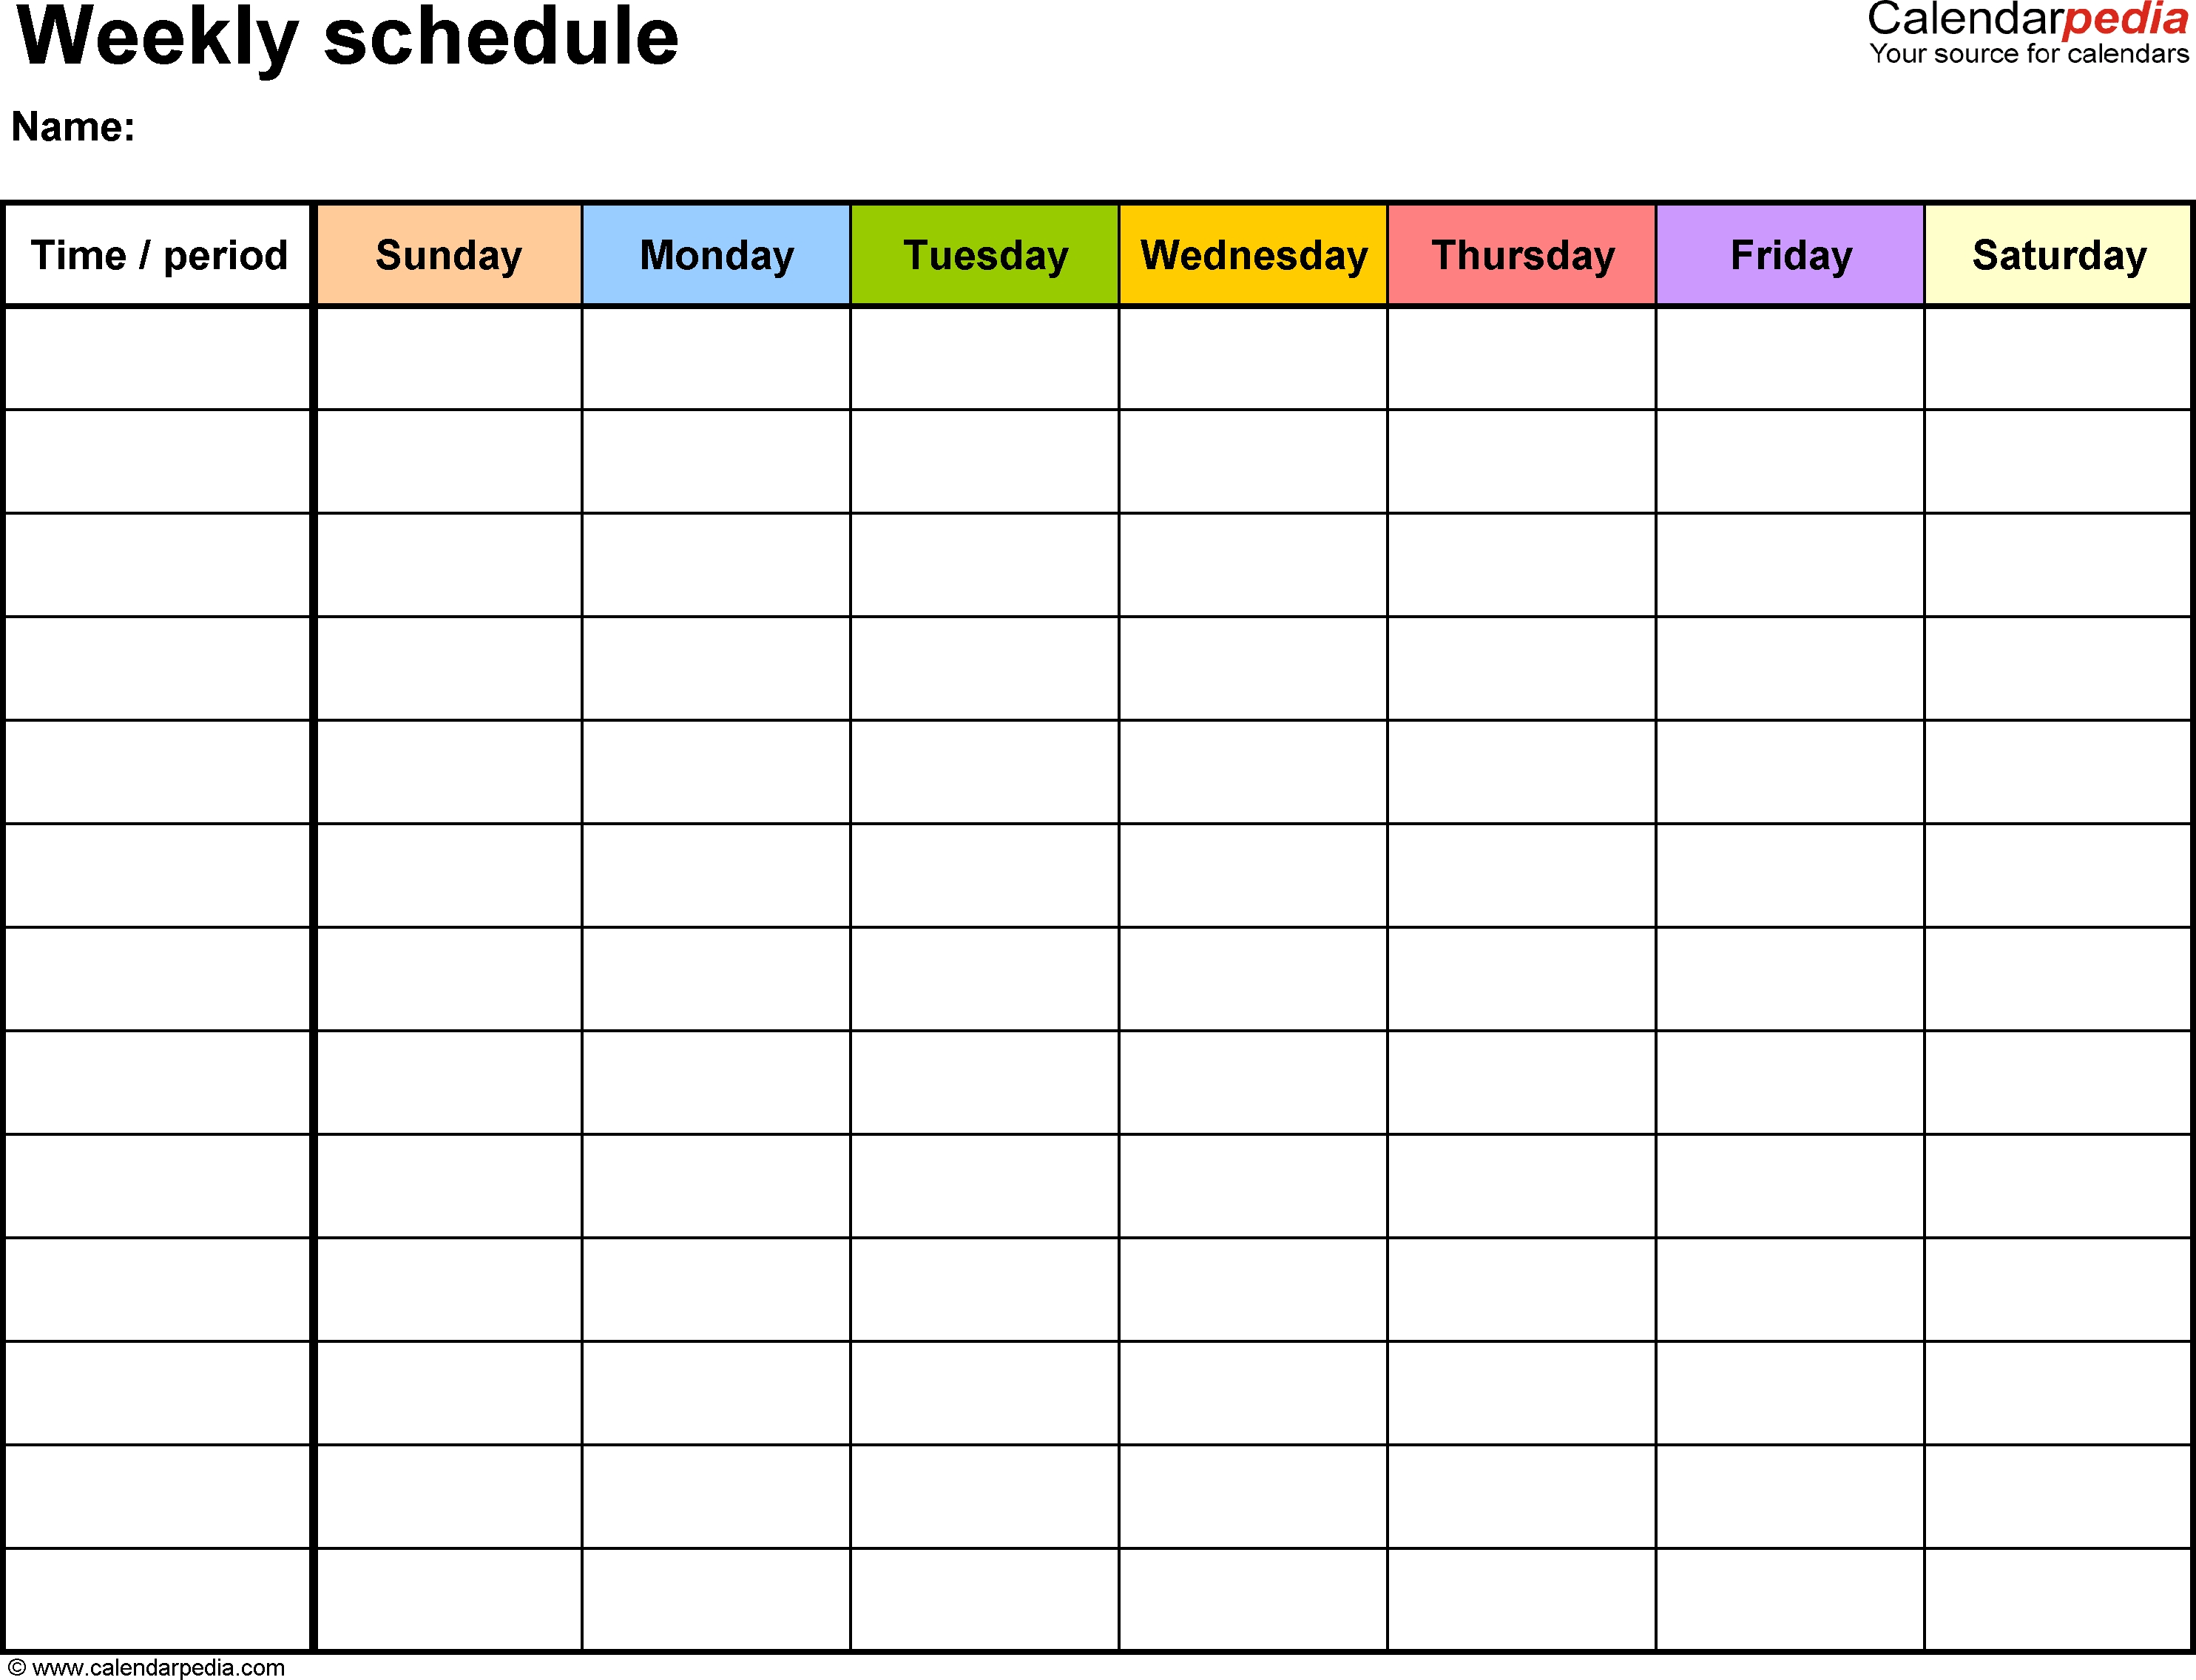 Free Weekly Schedule Templates For Excel - 18 Templates intended for 7 Day Time Weekly Planner